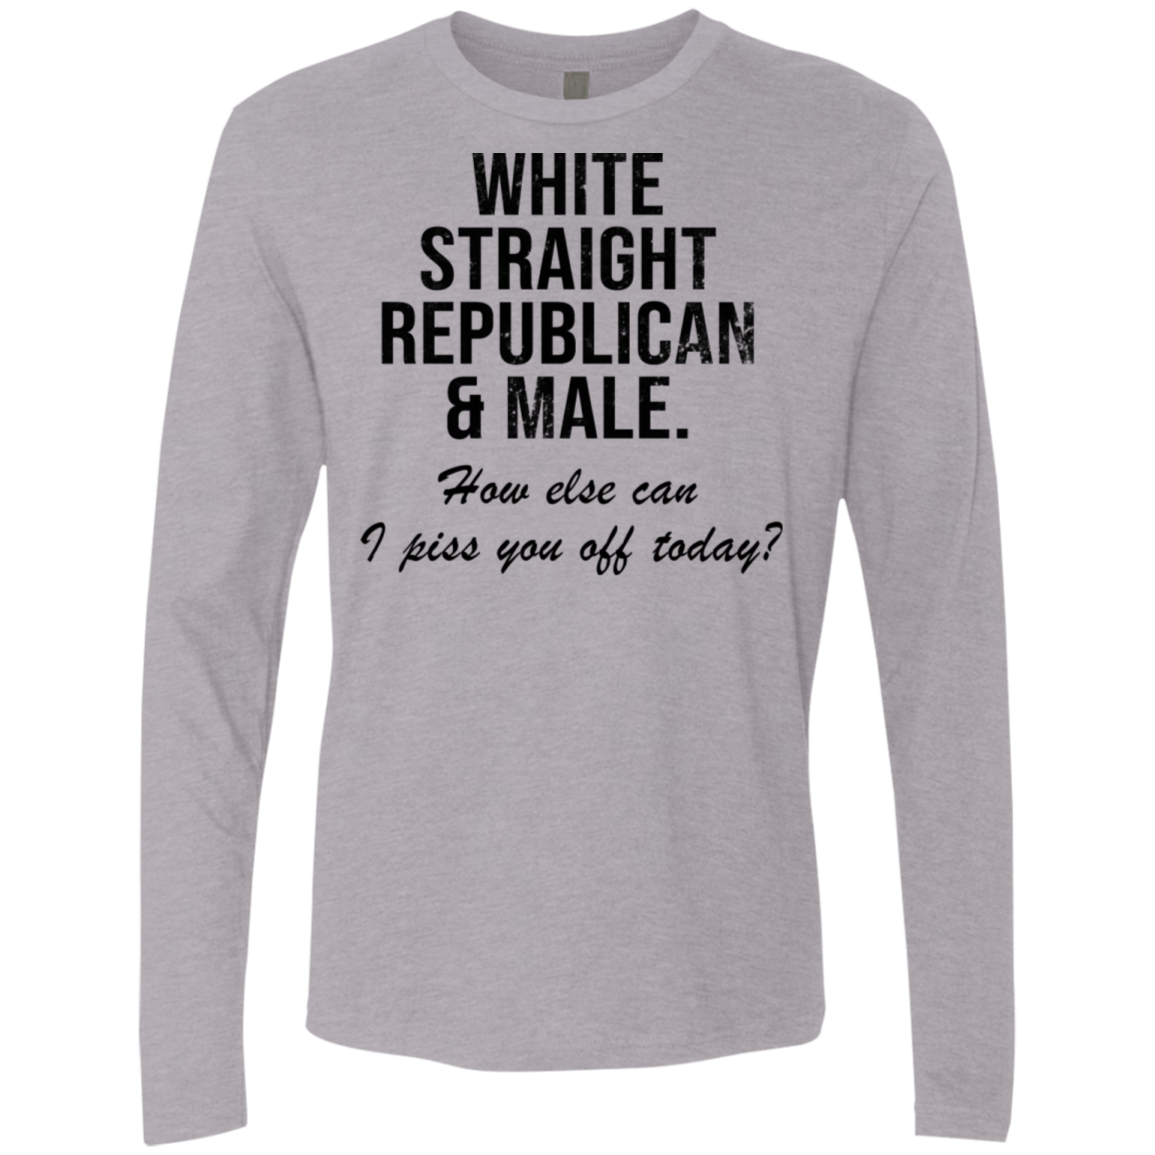 White Straight Republican Male How Else Can I Piss You Off Today Men's Long Sleeve Tee